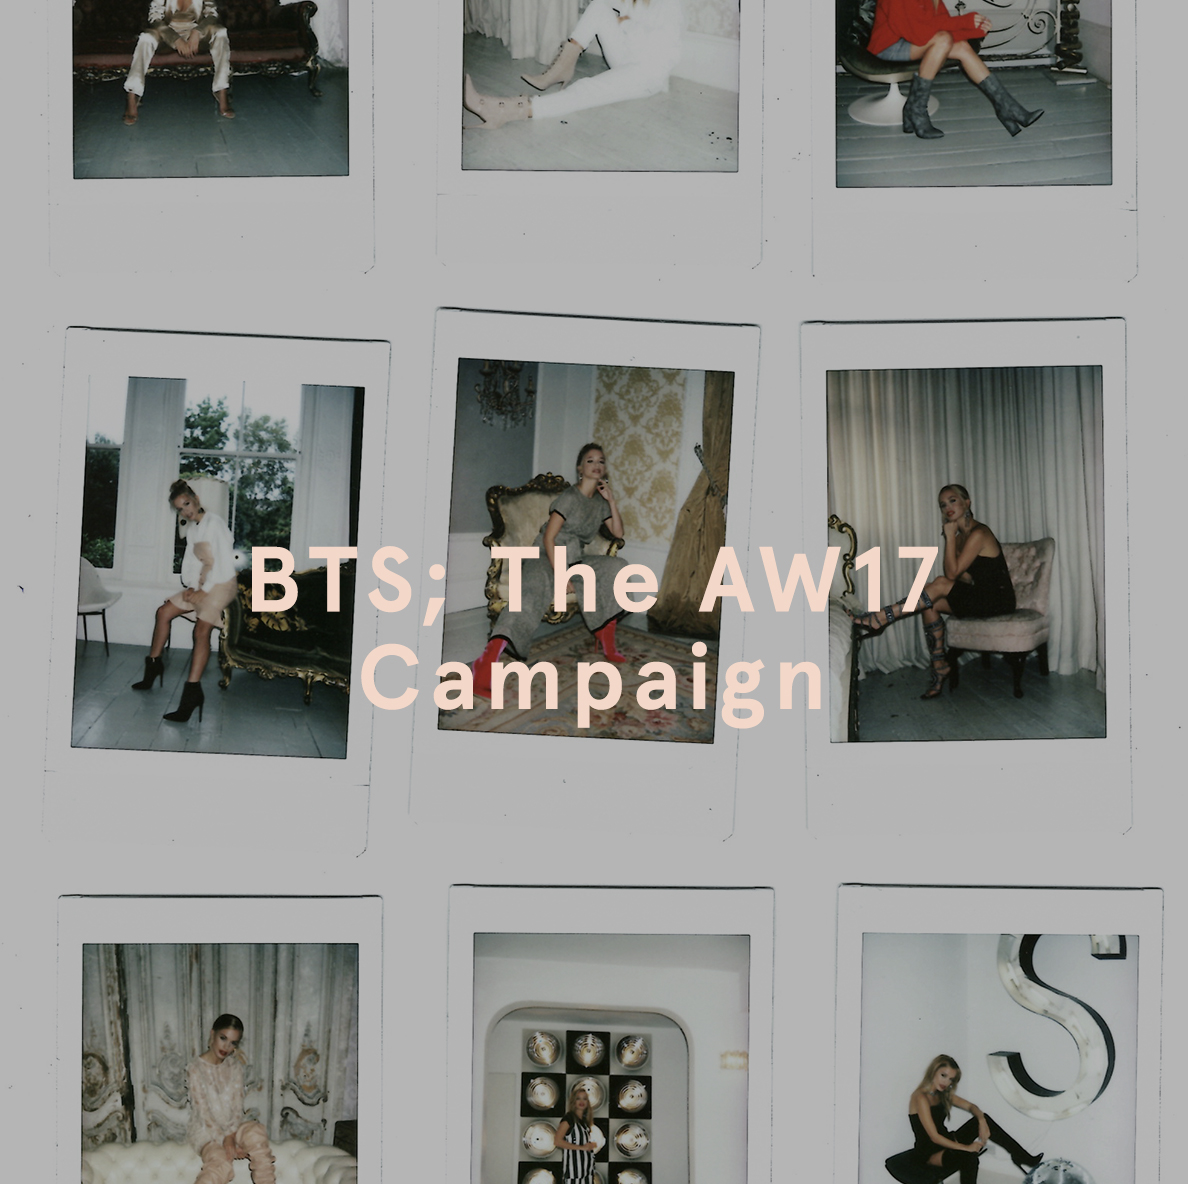 AW17 Campaign